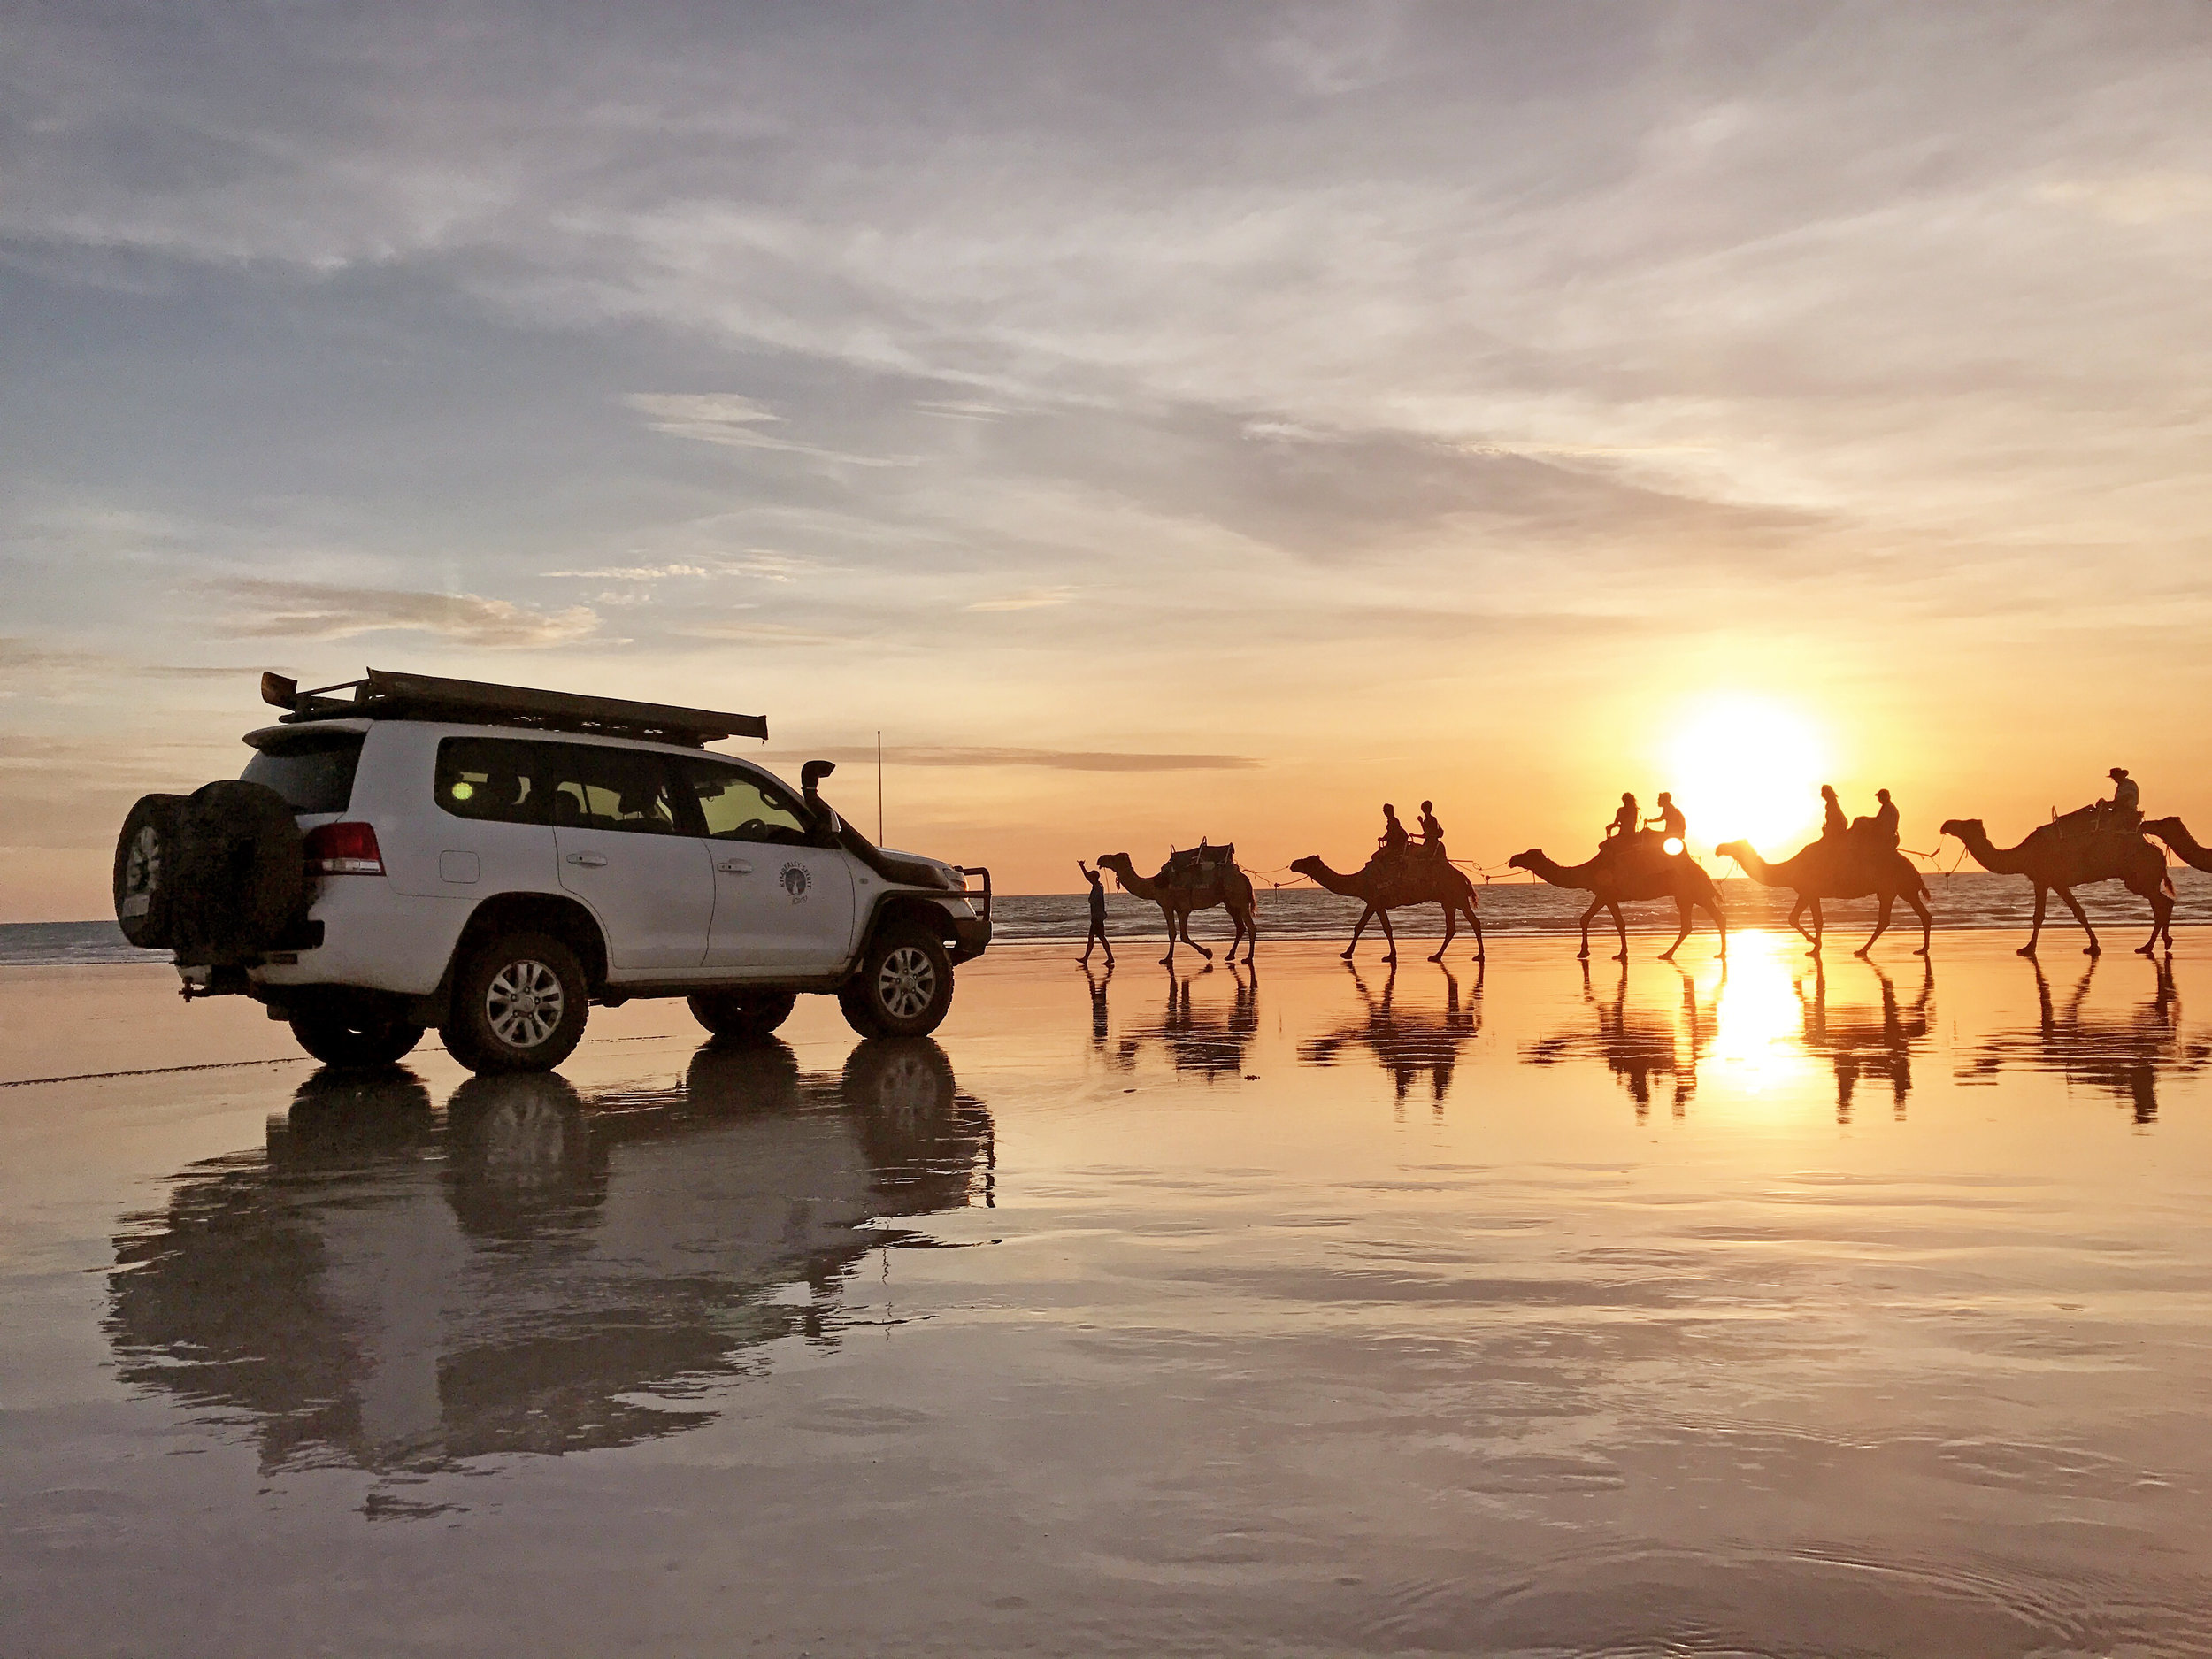 On safari. Any tour that ends with Cable Beach is a good tour!